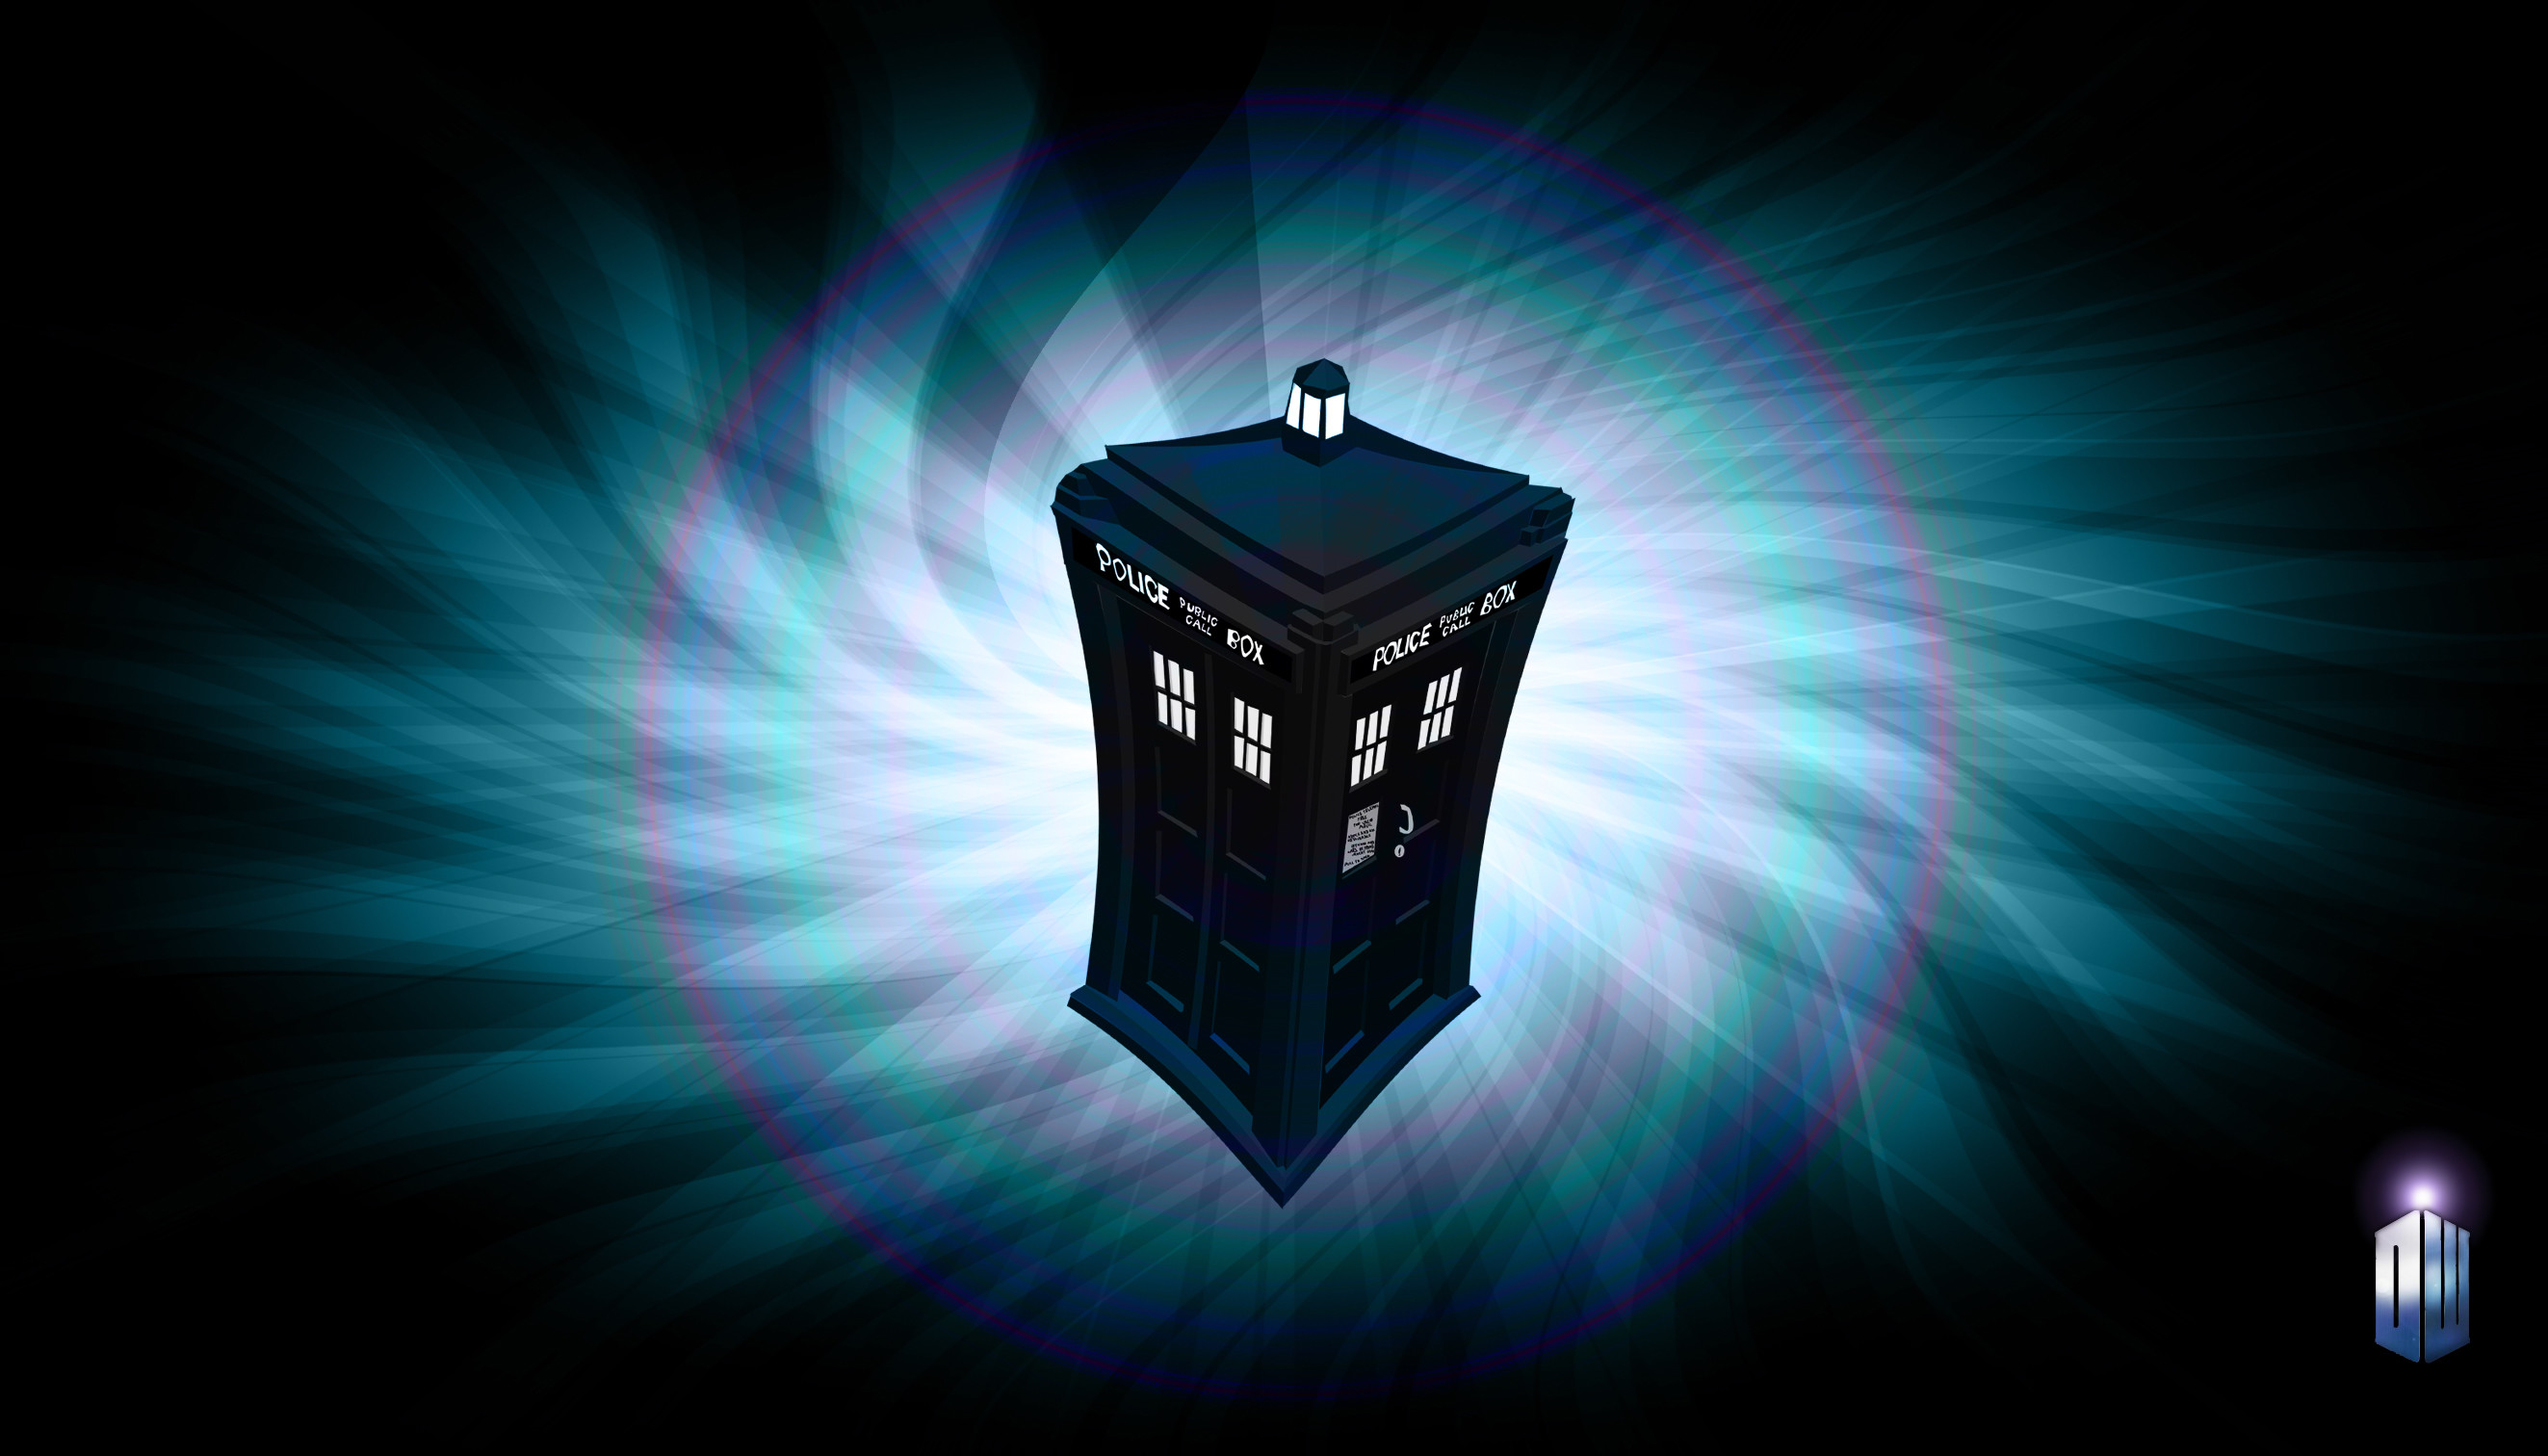 Doctor Who iPad Wallpaper (58+ images)